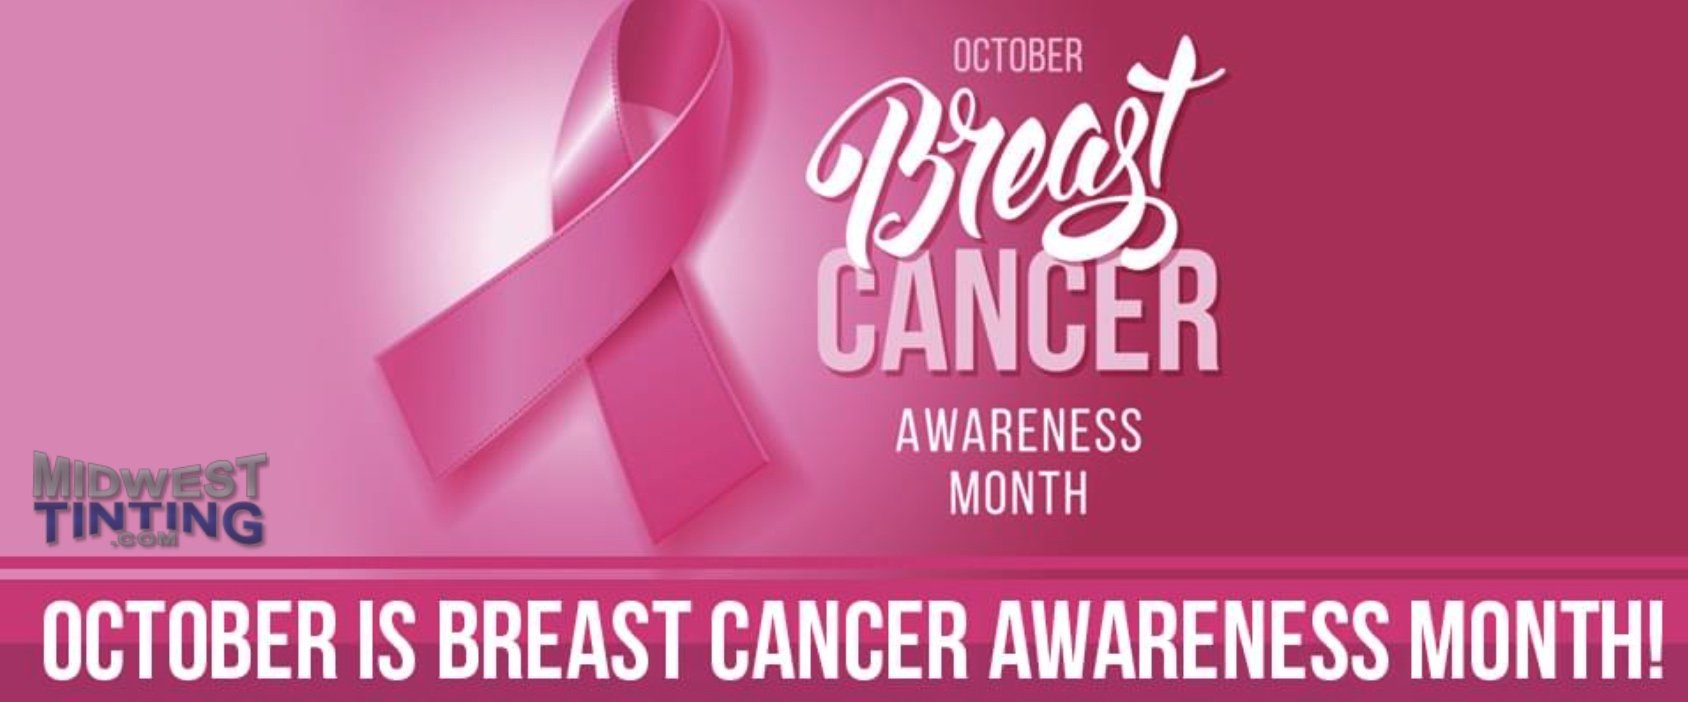 Midwest Tinting Supports Breast Cancer Awareness Month - Window Tinting in Kansas City